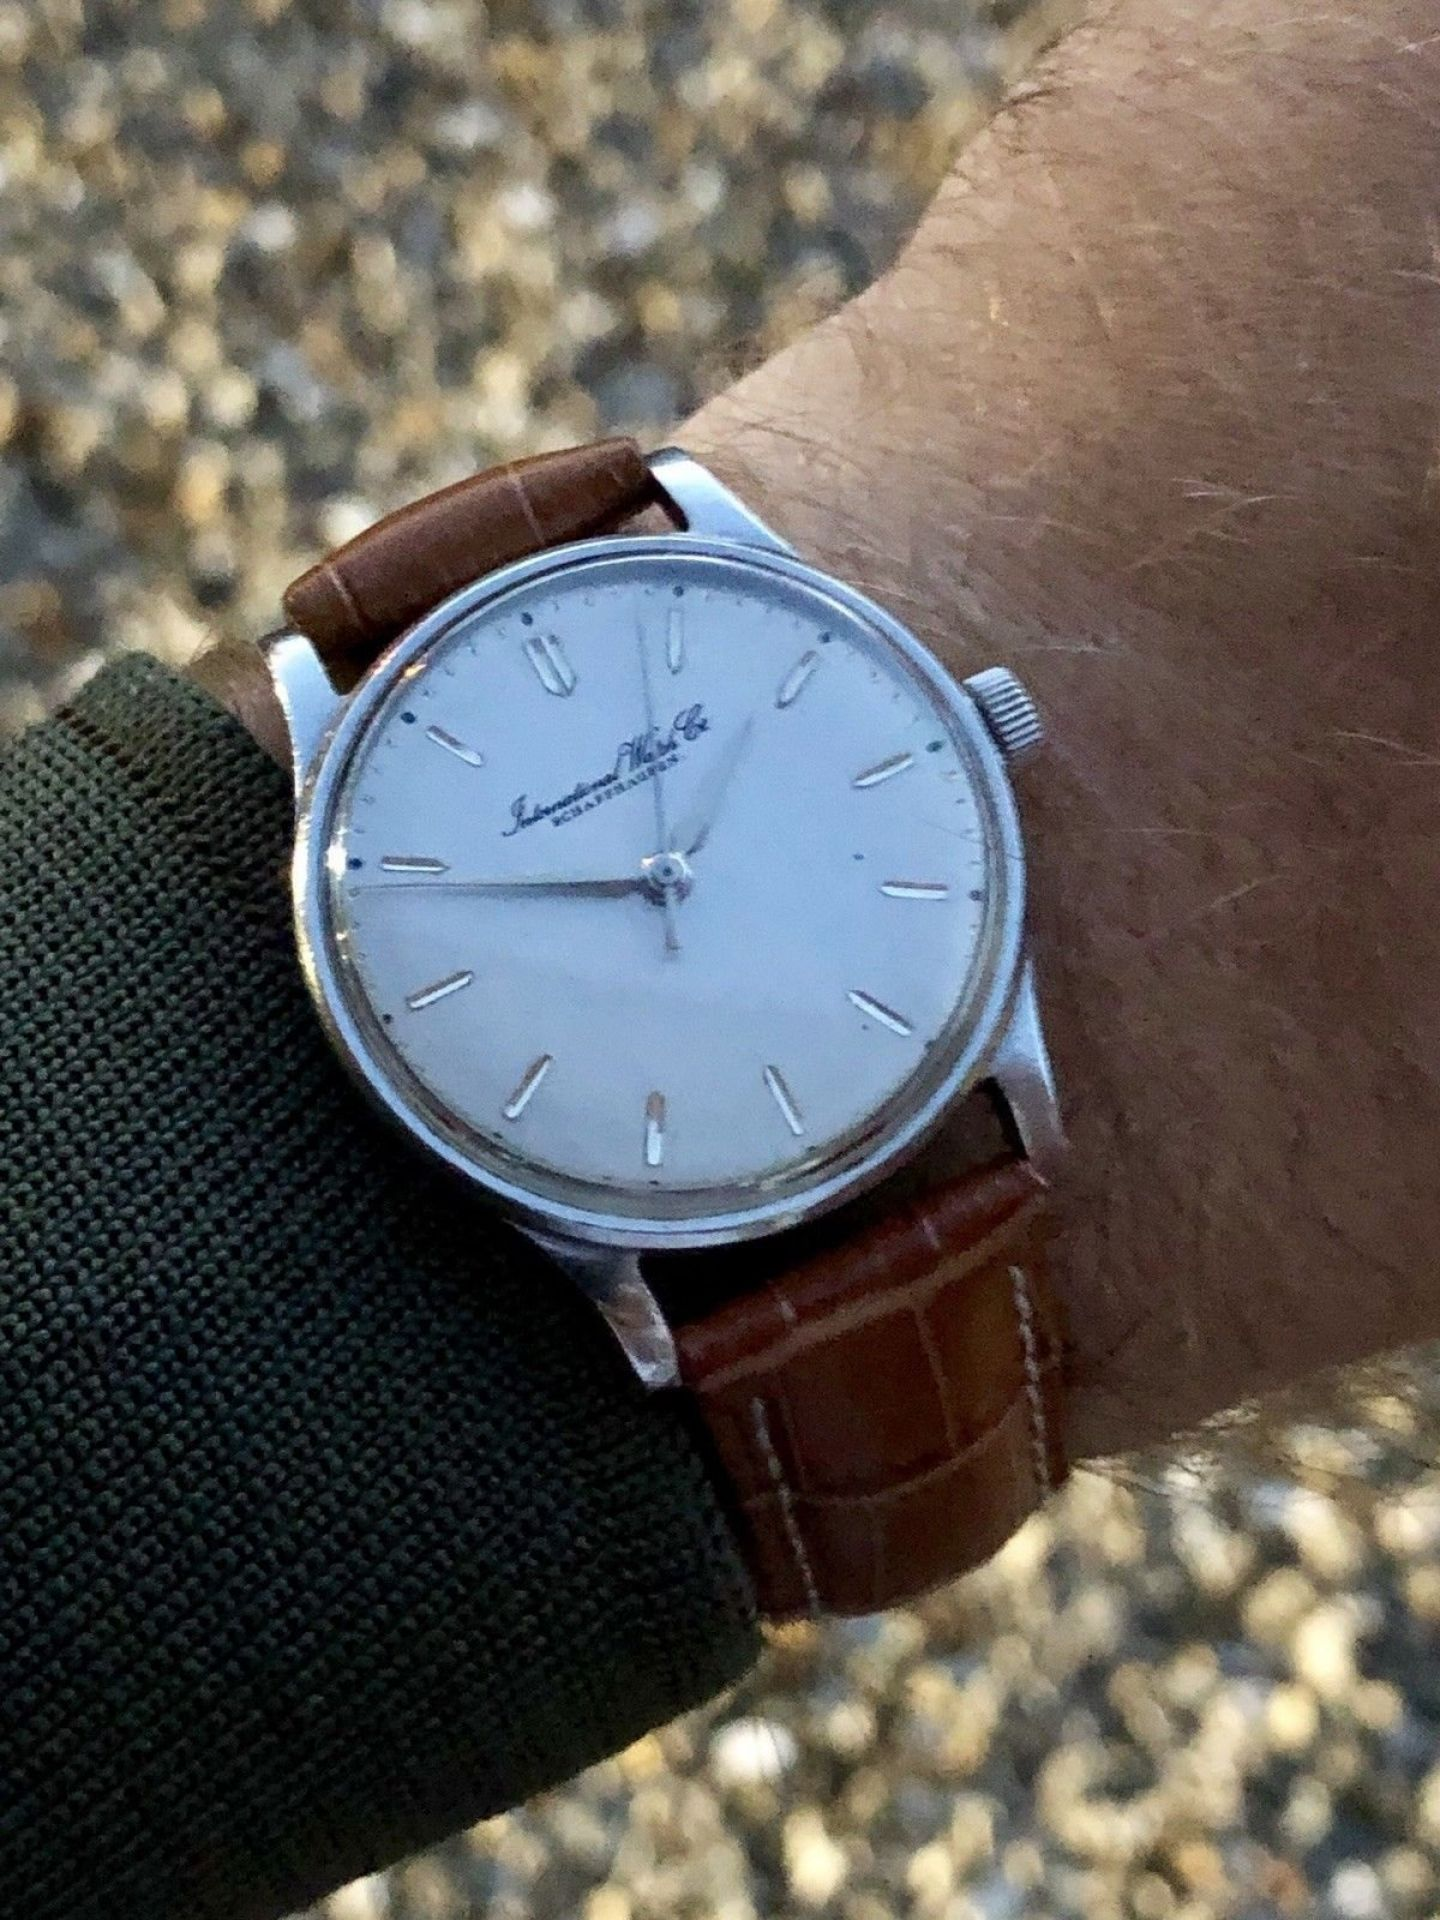 IWC 1968 MENS GREY DIAL FACE MECHANICAL SCHAFFHAUSEN WATCH CAL C 89 VINTAGE